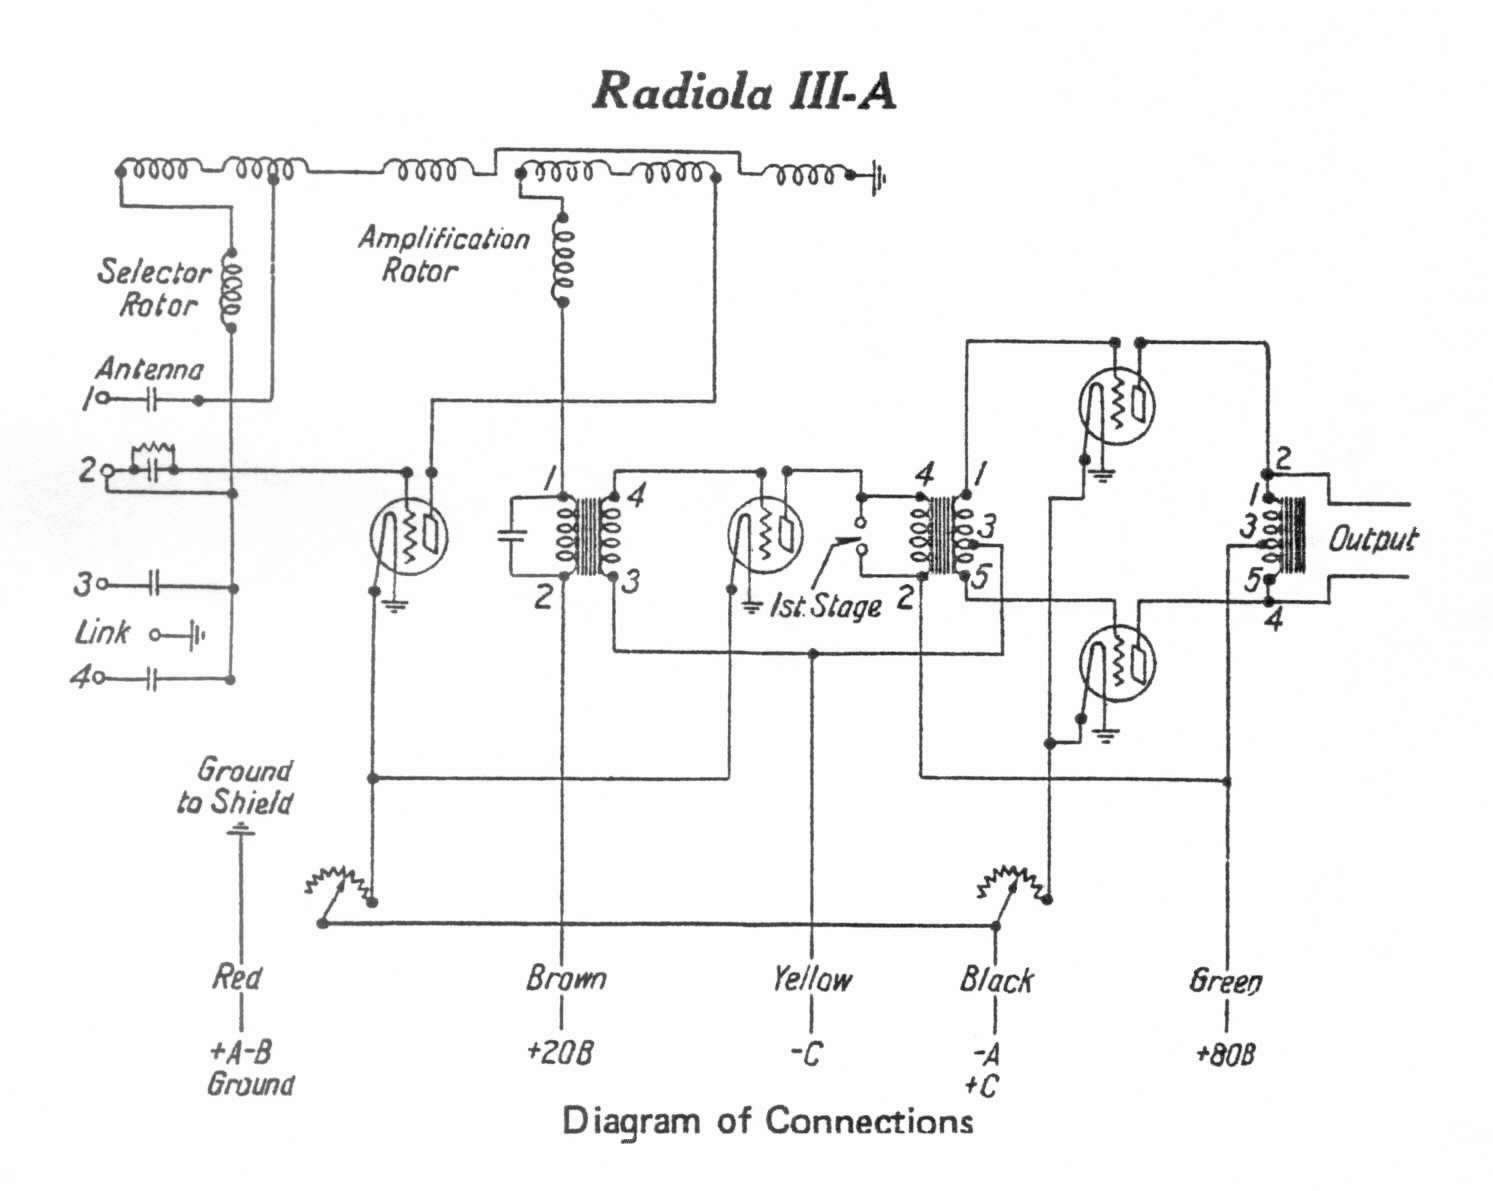 My Hf Receiver Collection 5mhz Notch Filter Circuit Diagram Electronic Diagrams Radiola Iii A Schematic